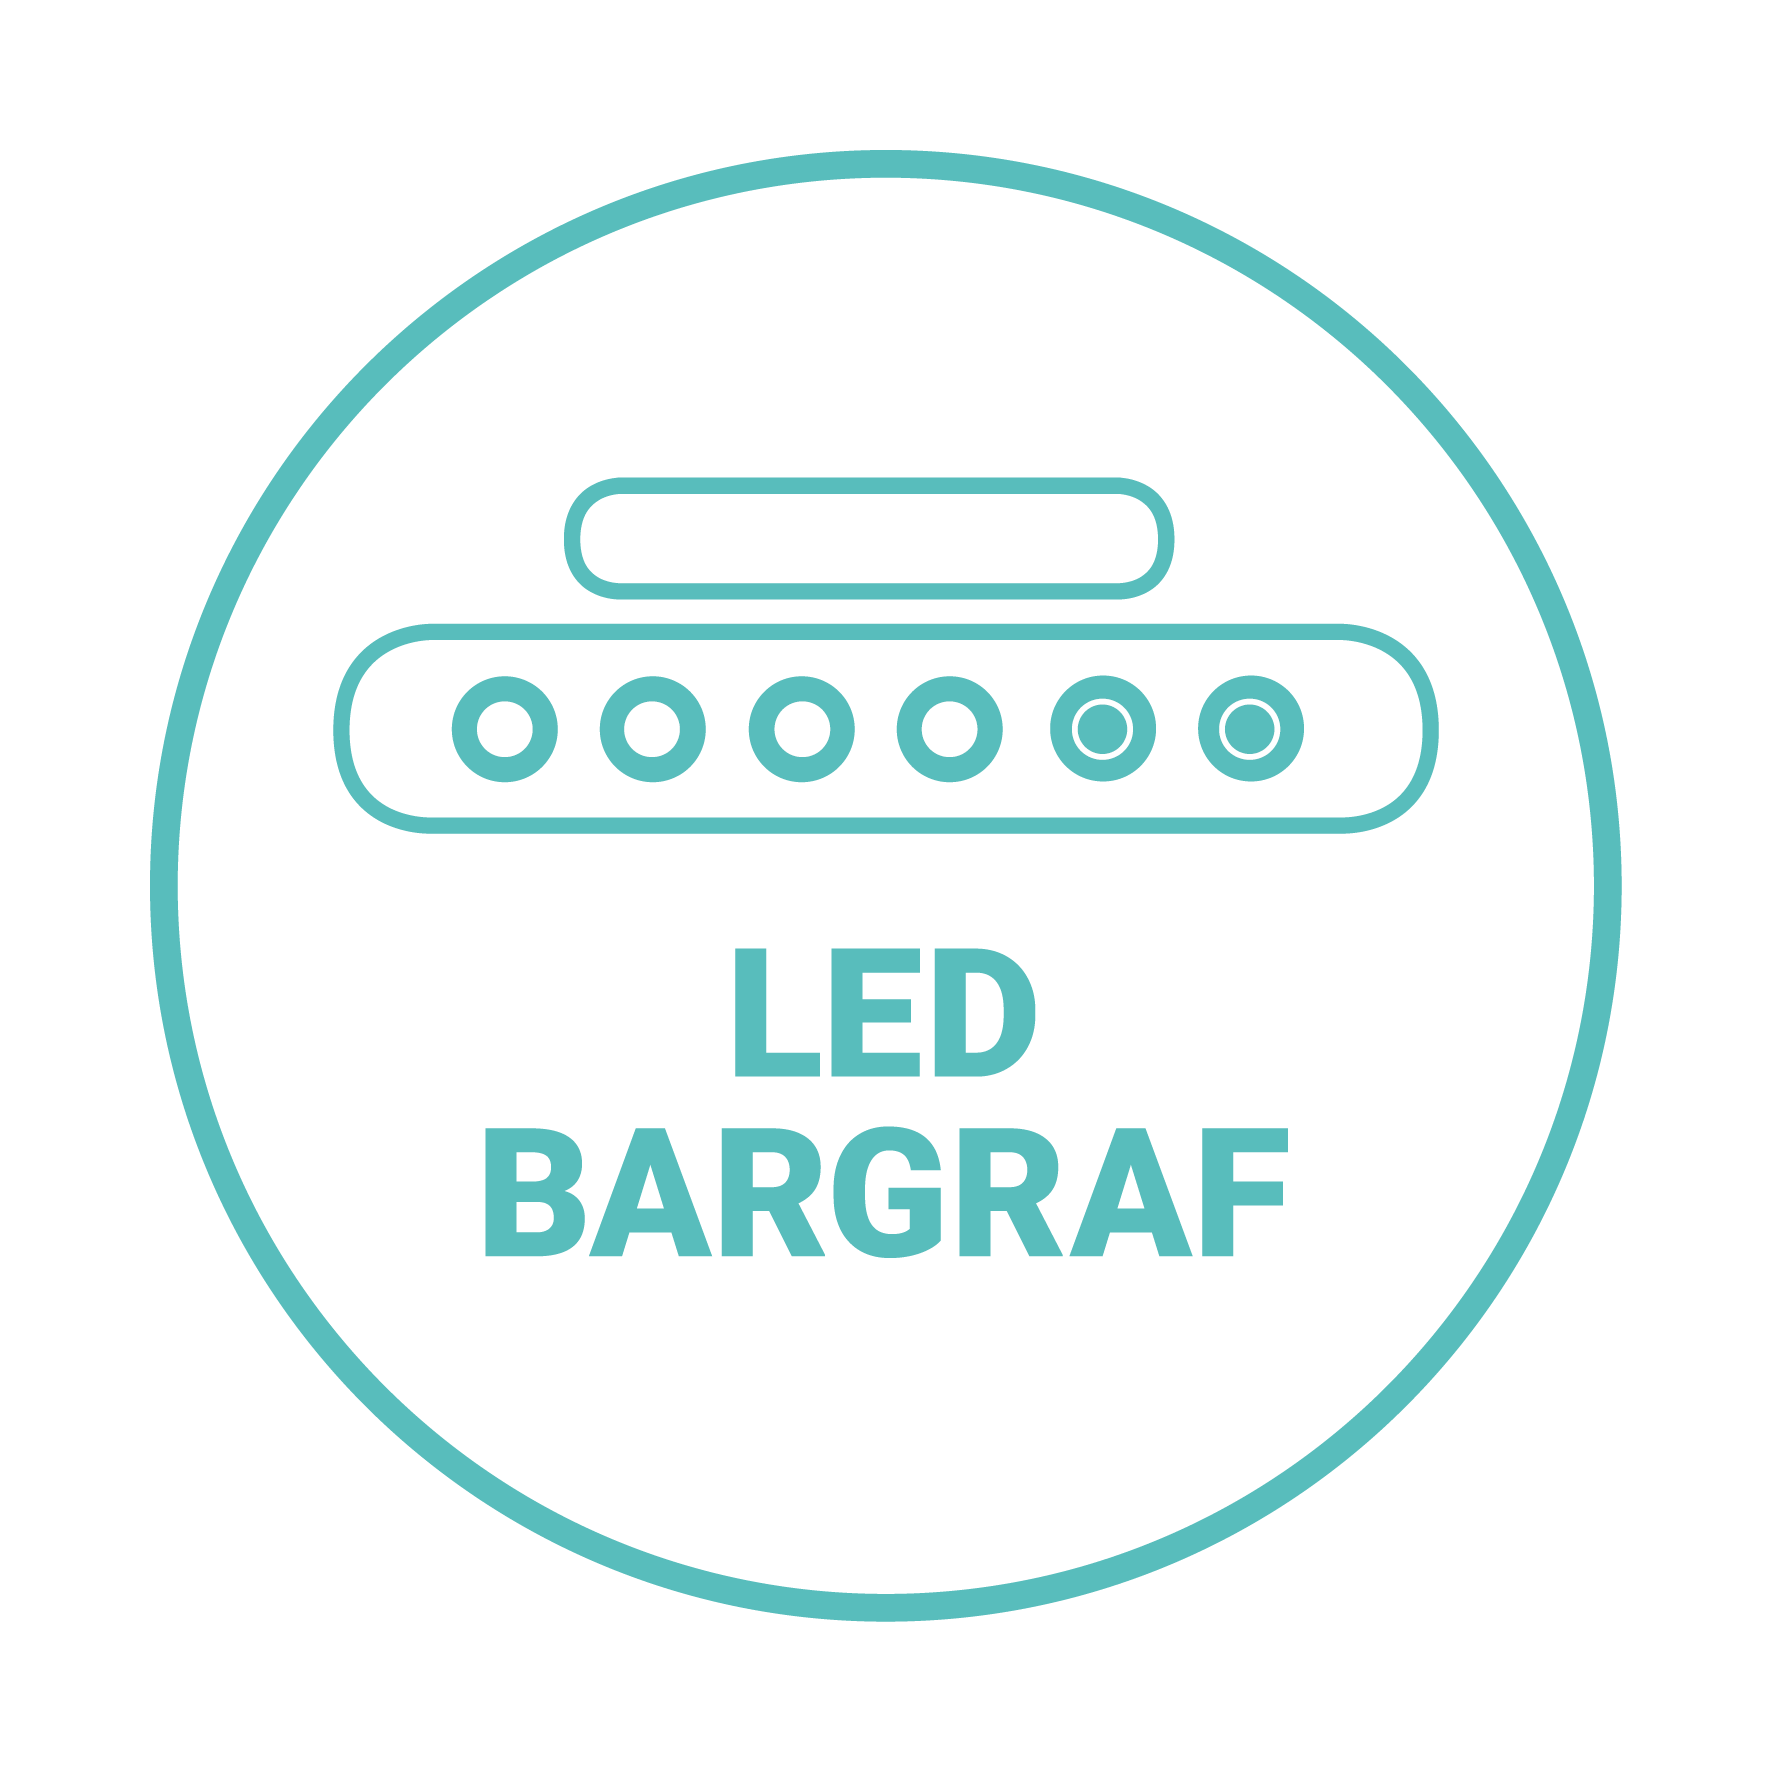 LED BARGRAF